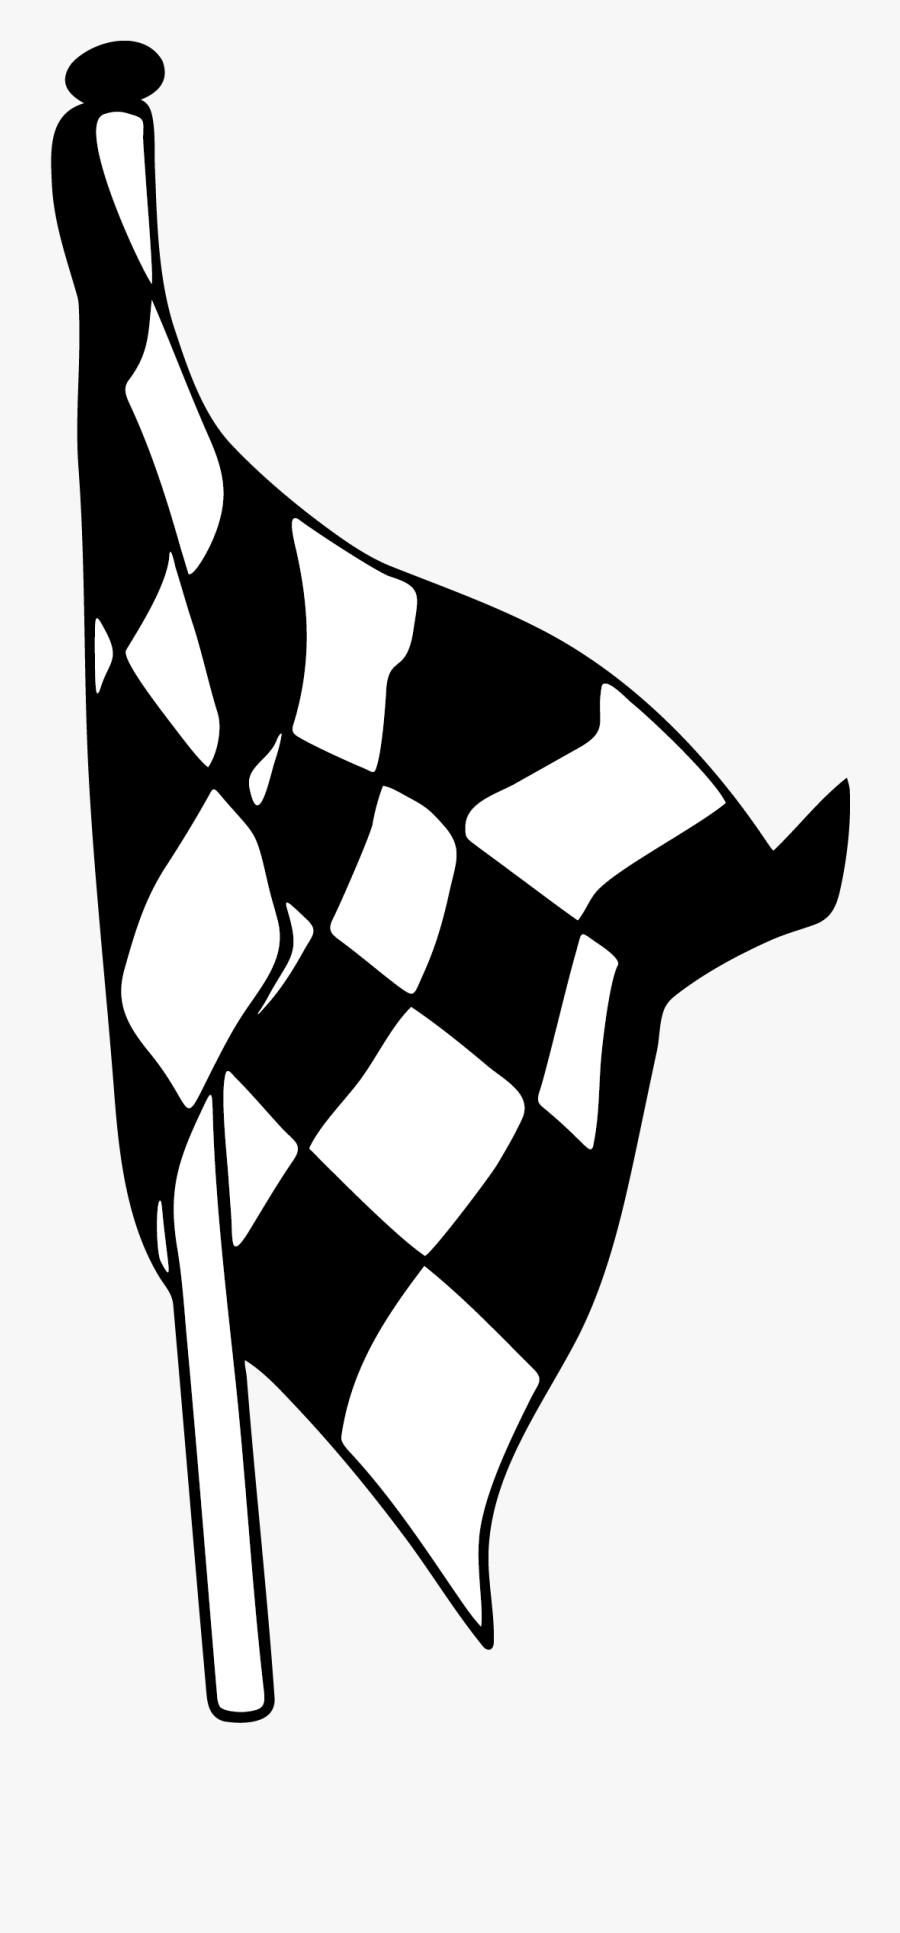 Clip Freeuse Flags Vector Black And White - Racing Flags, Transparent Clipart